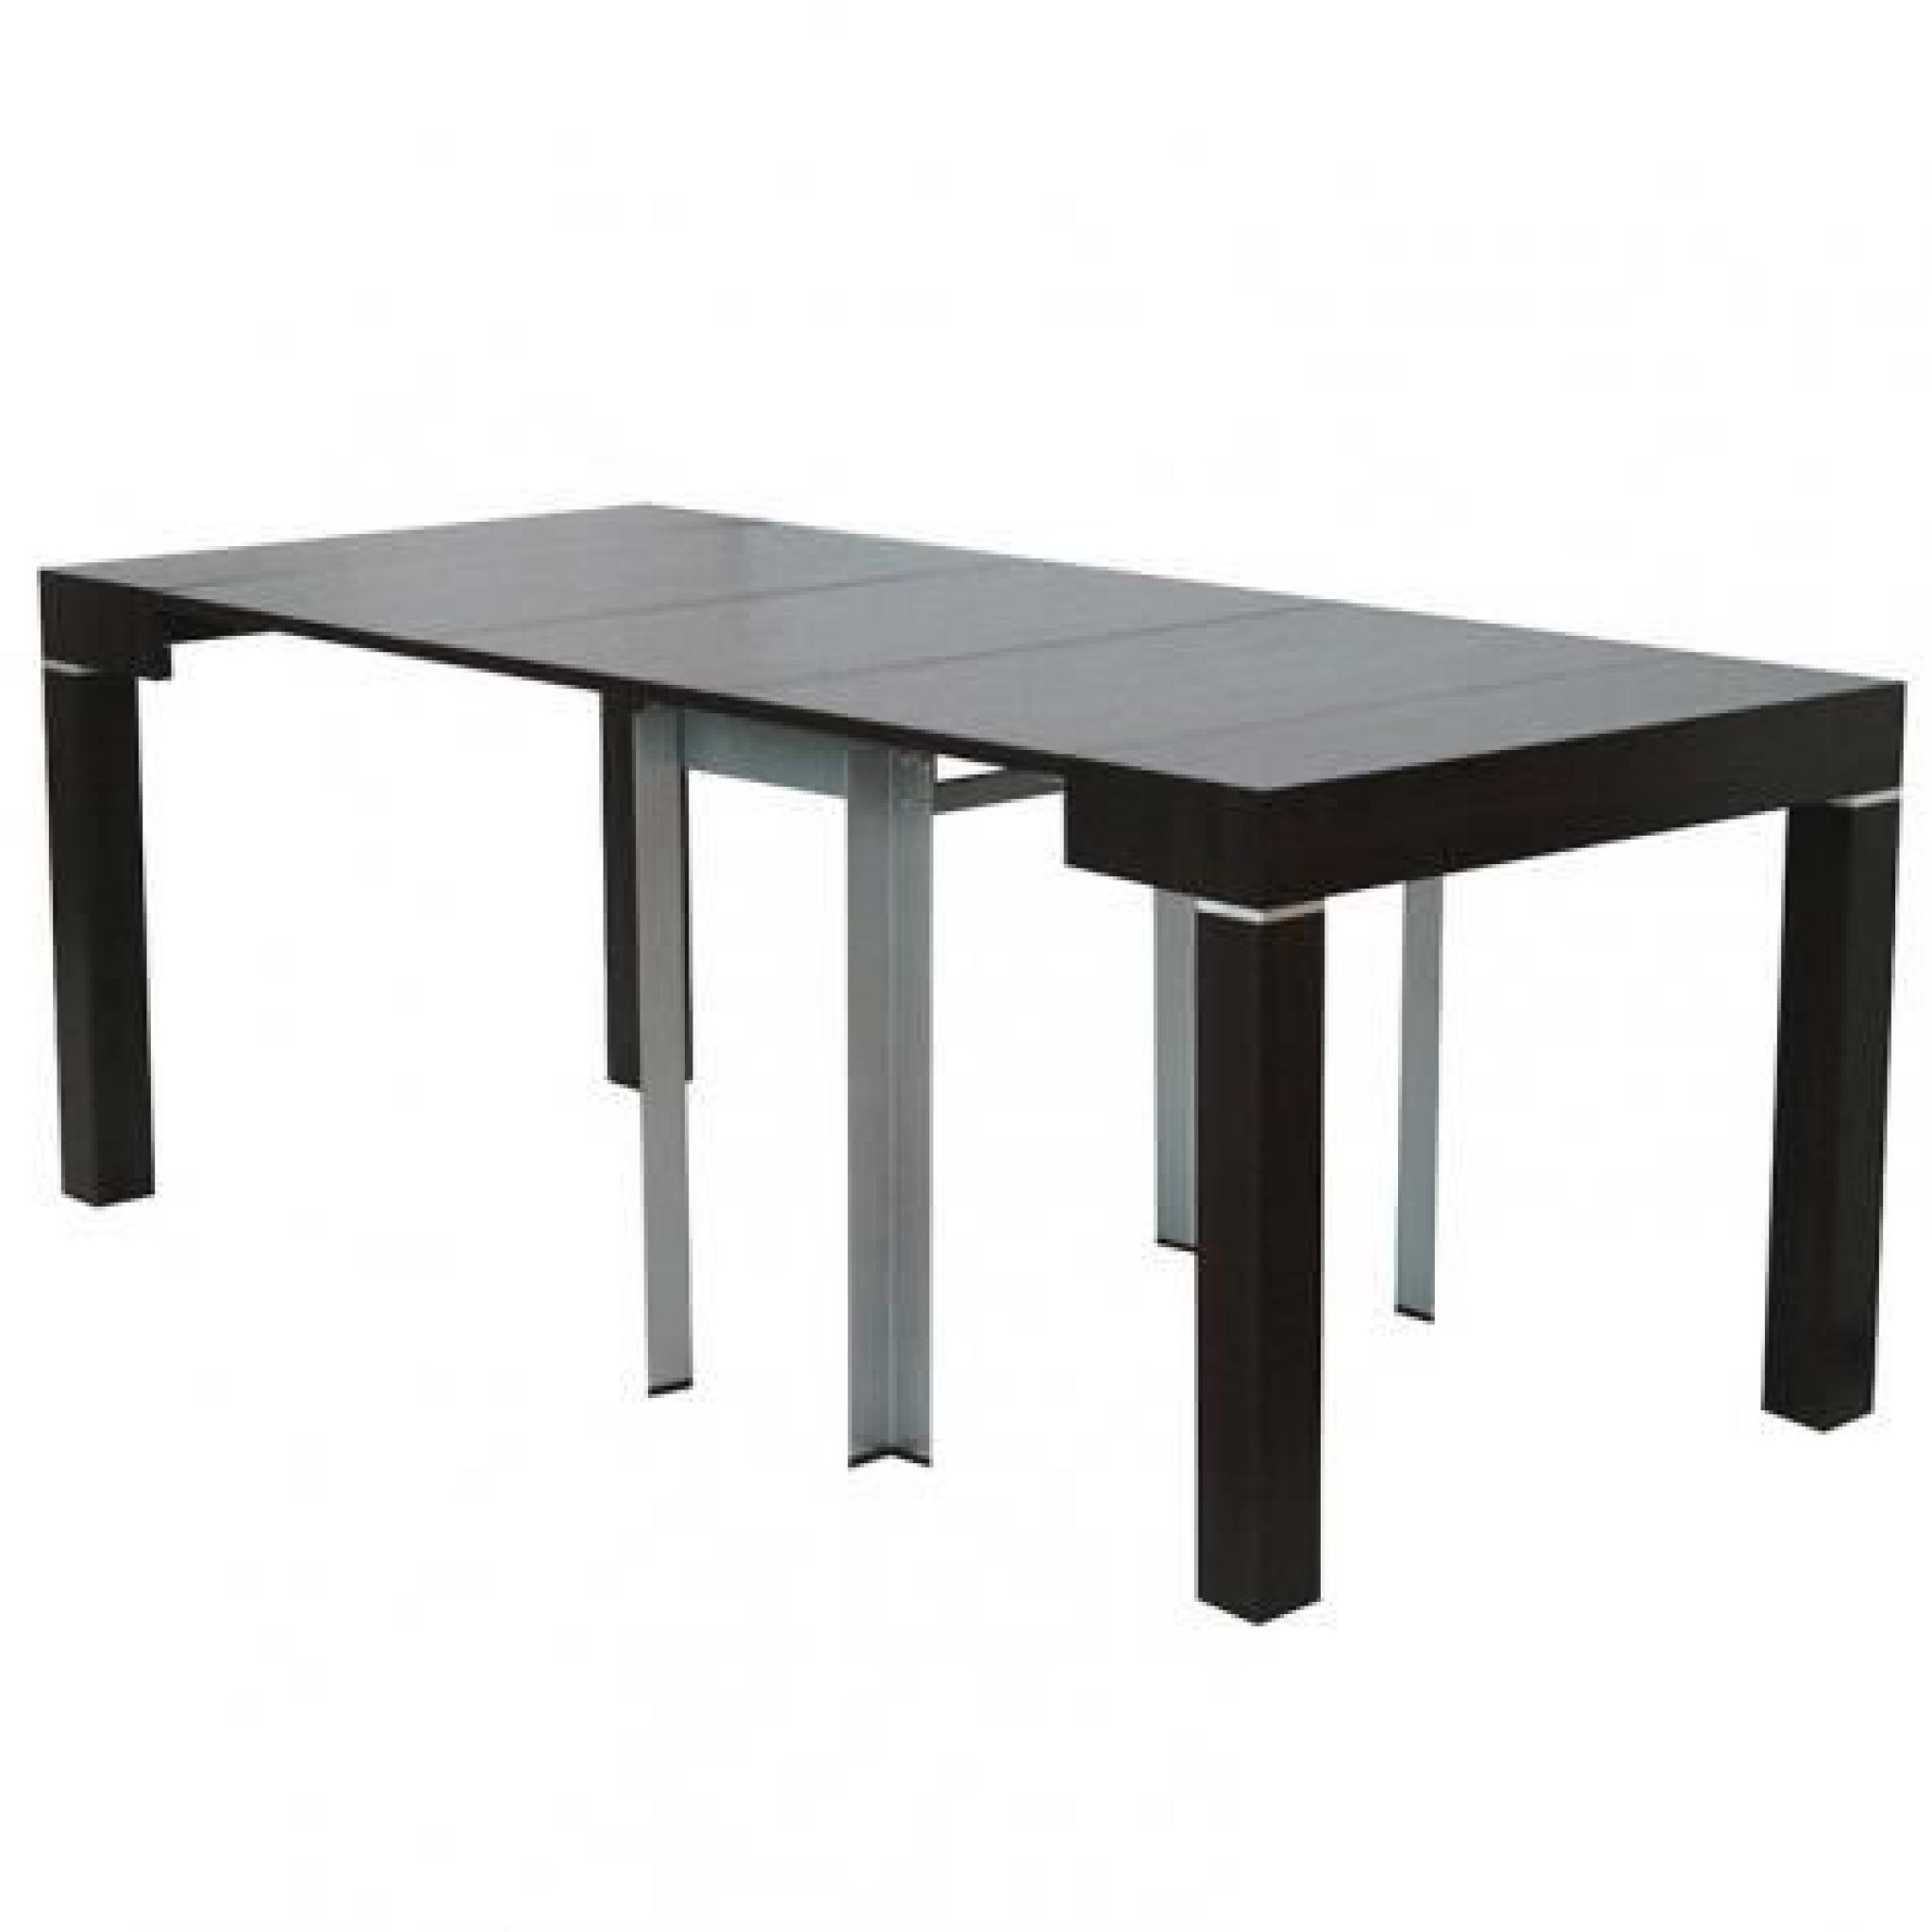 Table Console Extensible Design Console Table Extensible Table Console Extensible